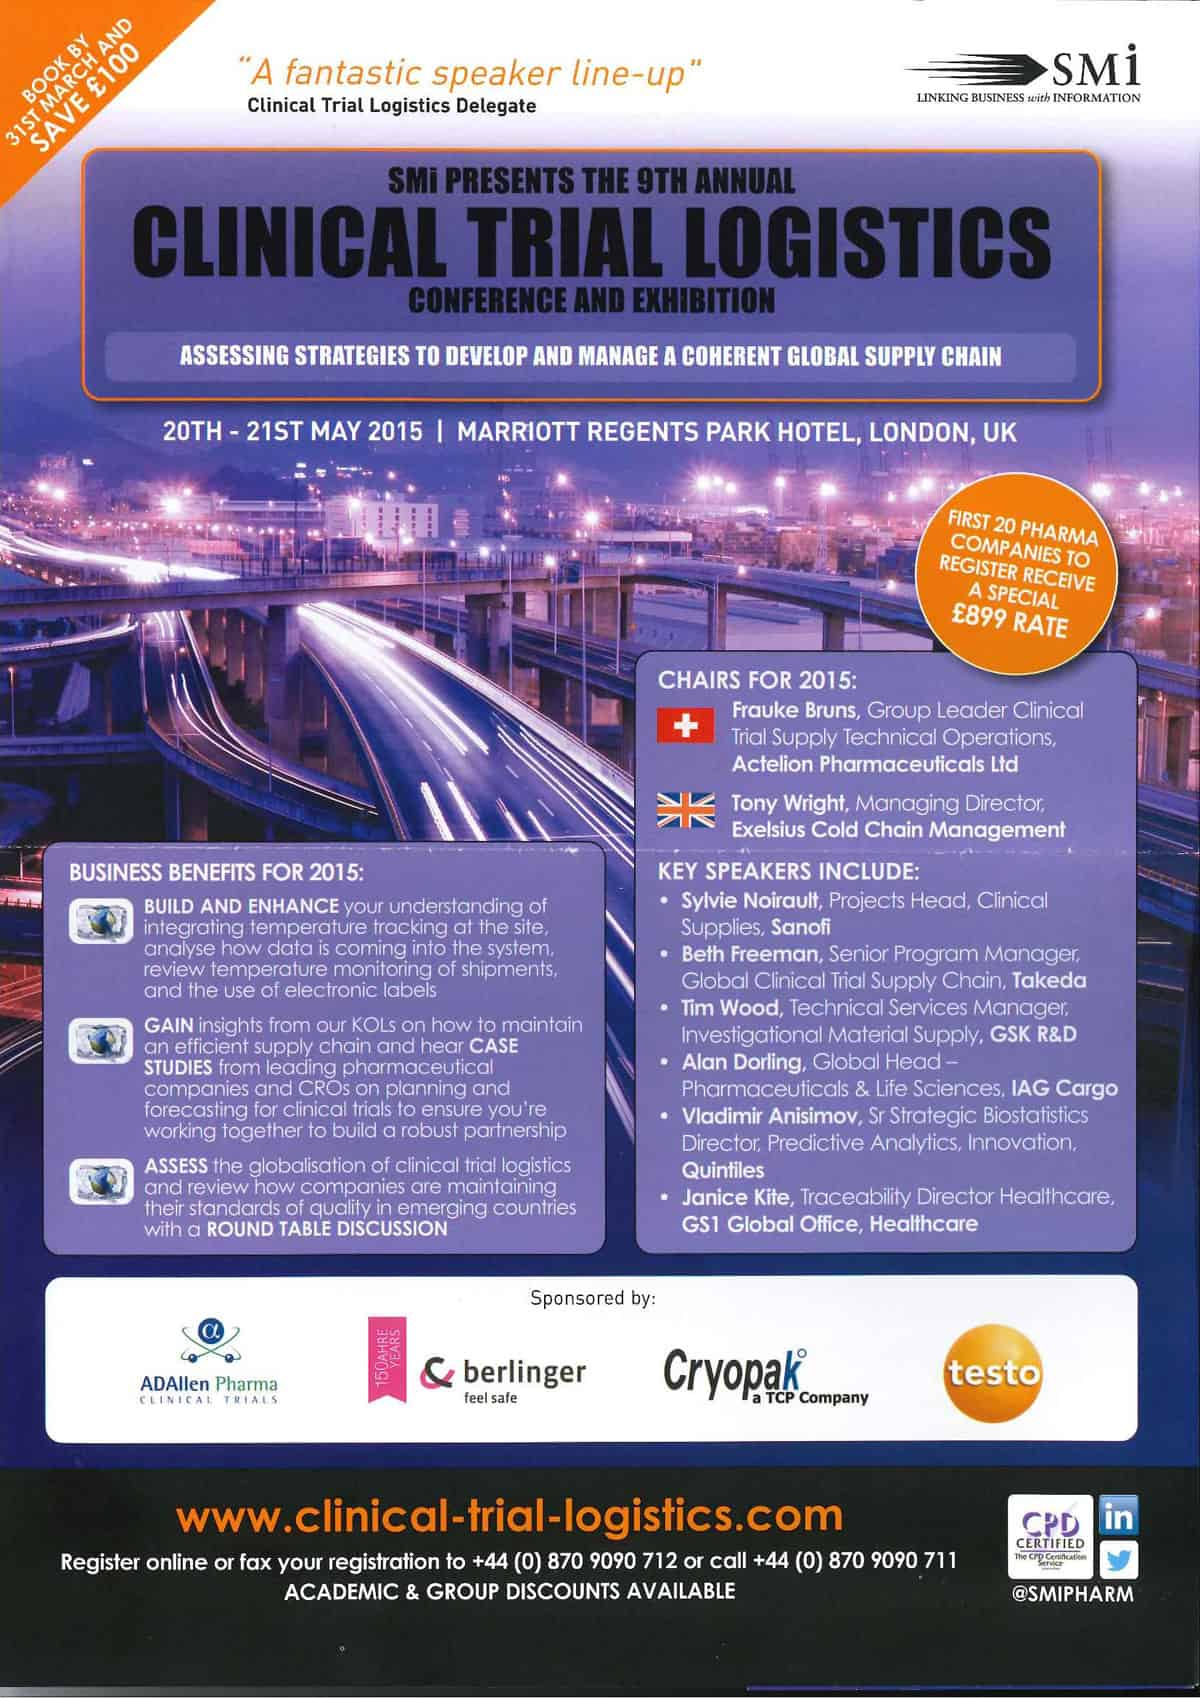 Clinical Trial Logistics - London